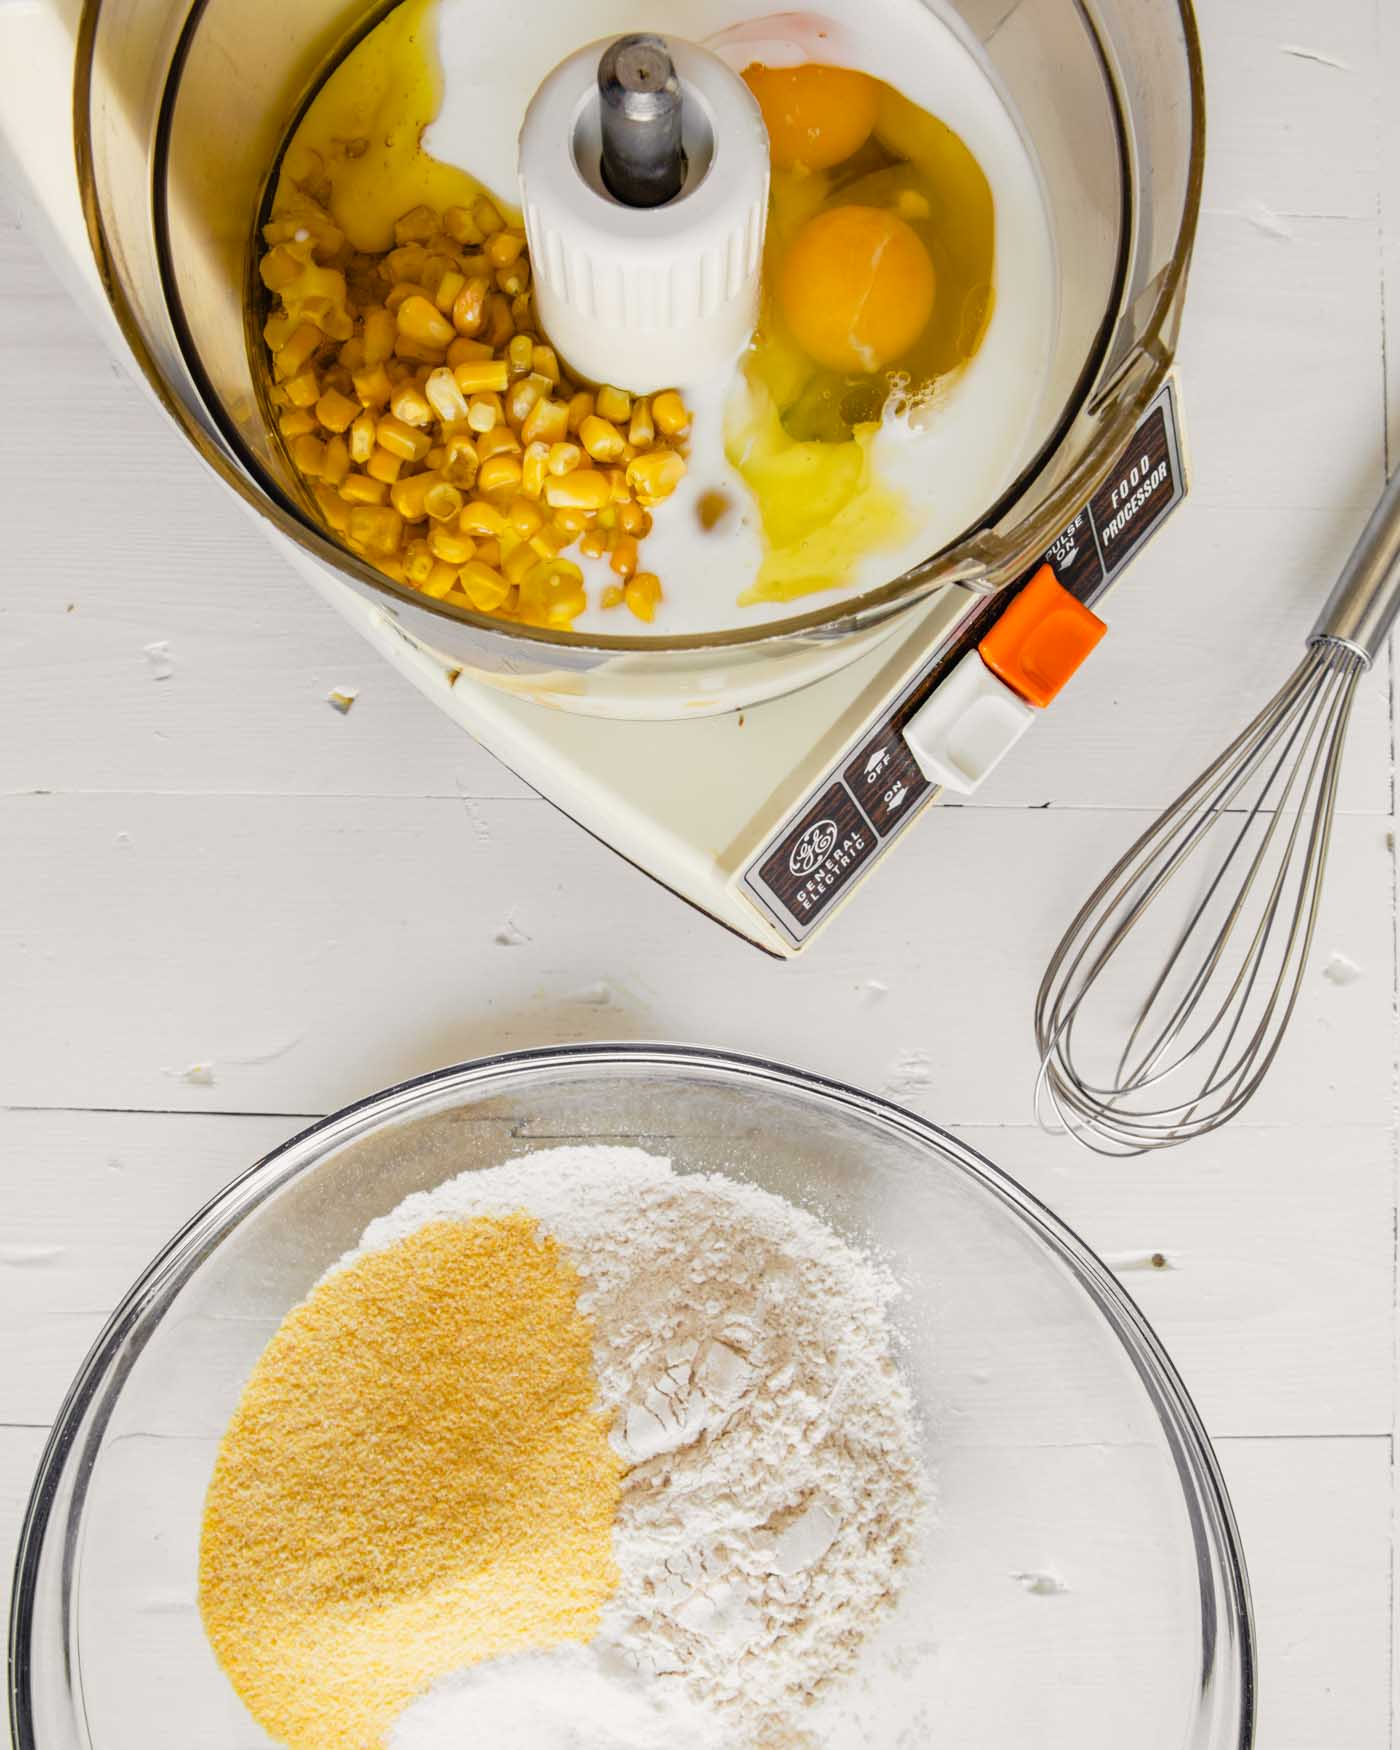 Overhead image of ingredients for a healthy cornbread arranged on a white wooden table